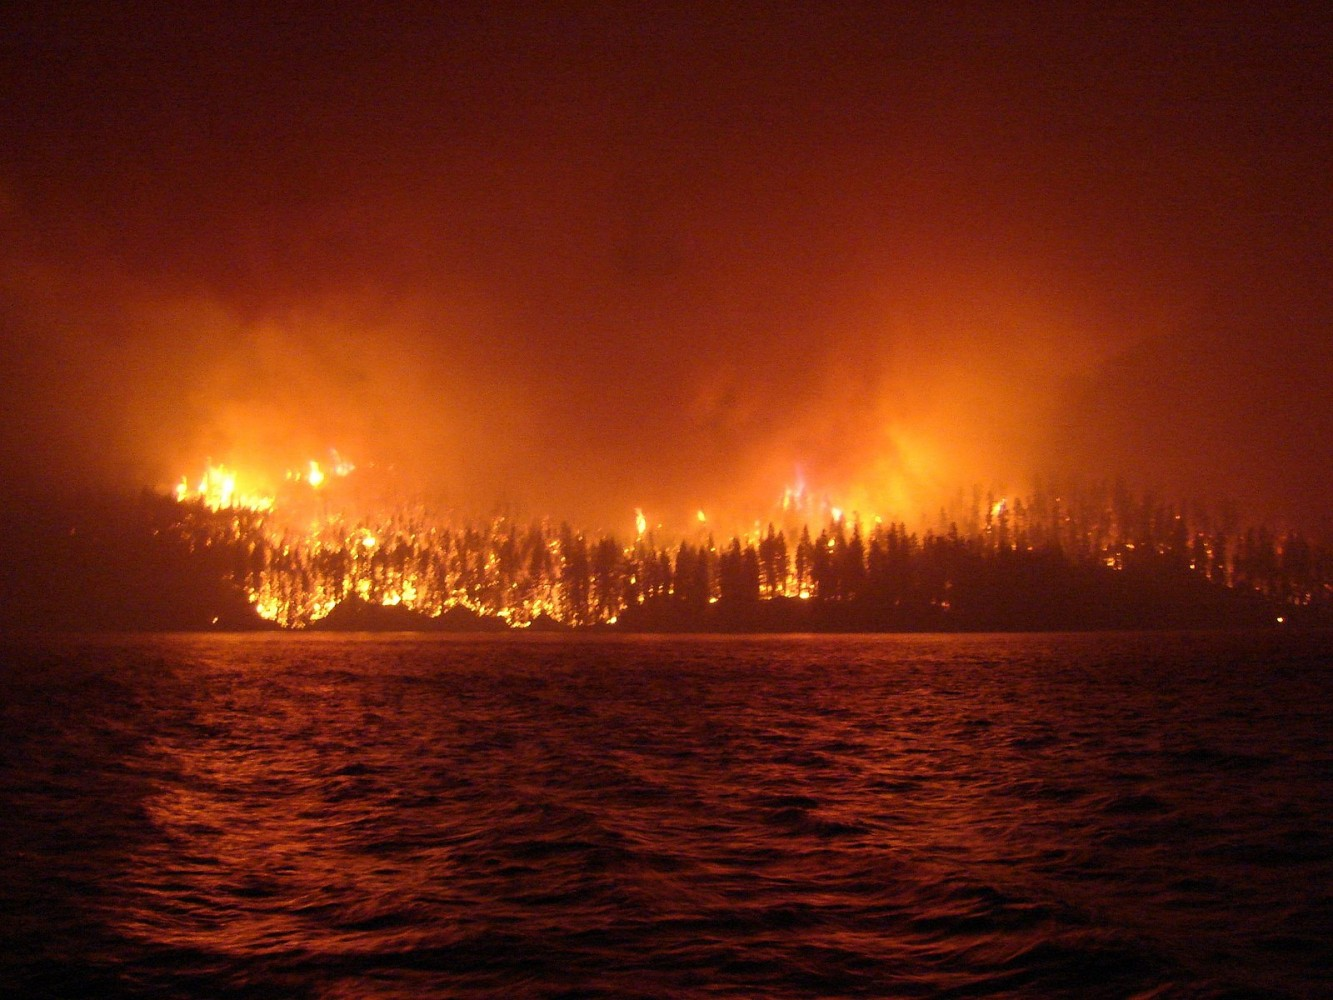 Earth's doomsday scenario is here & municipal leaders could not care less